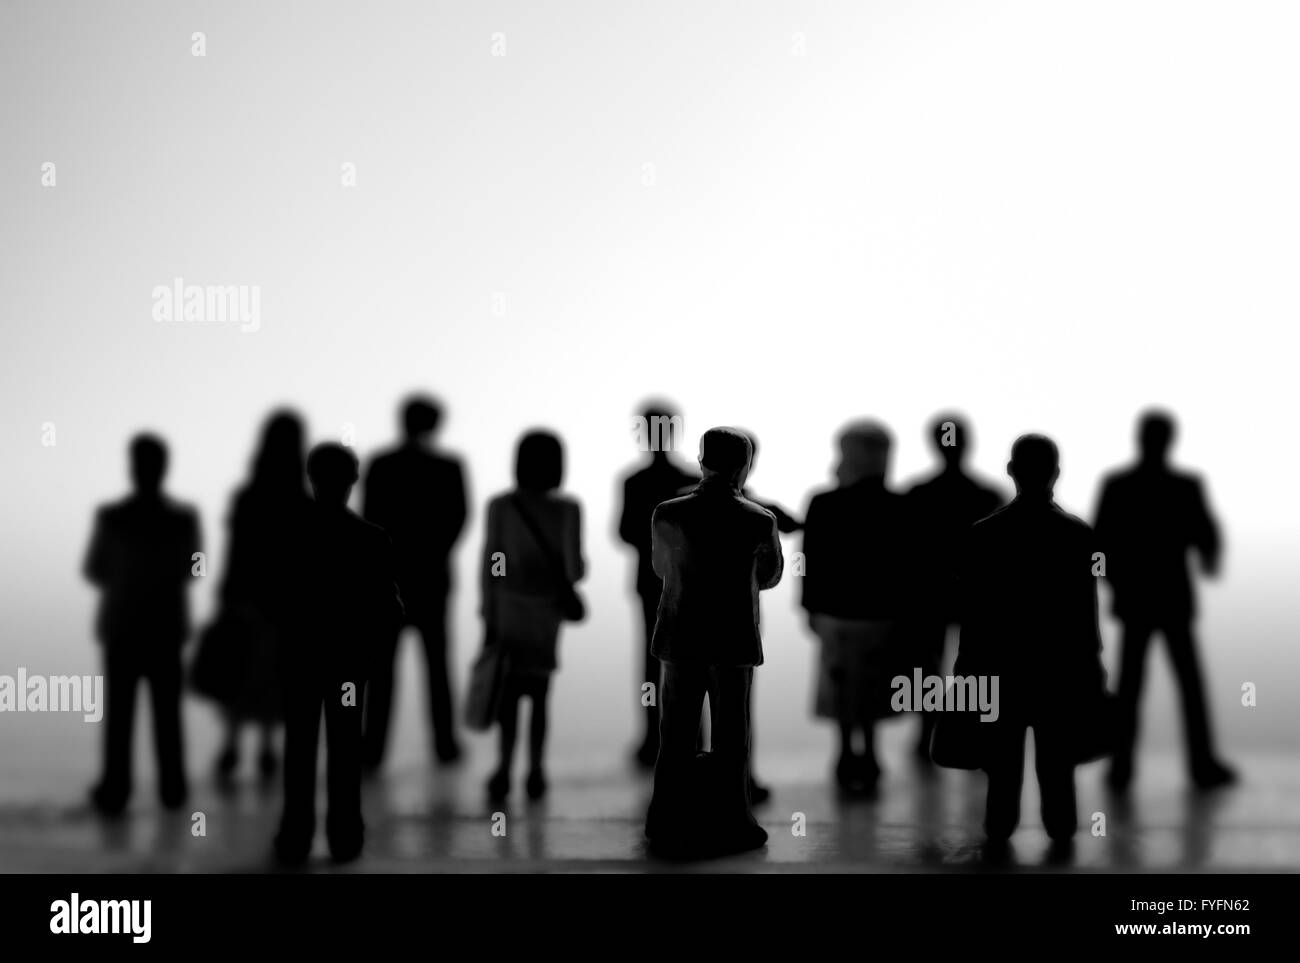 Crowdfunding concept. A crowd of miniature people standing in silhouette. - Stock Image